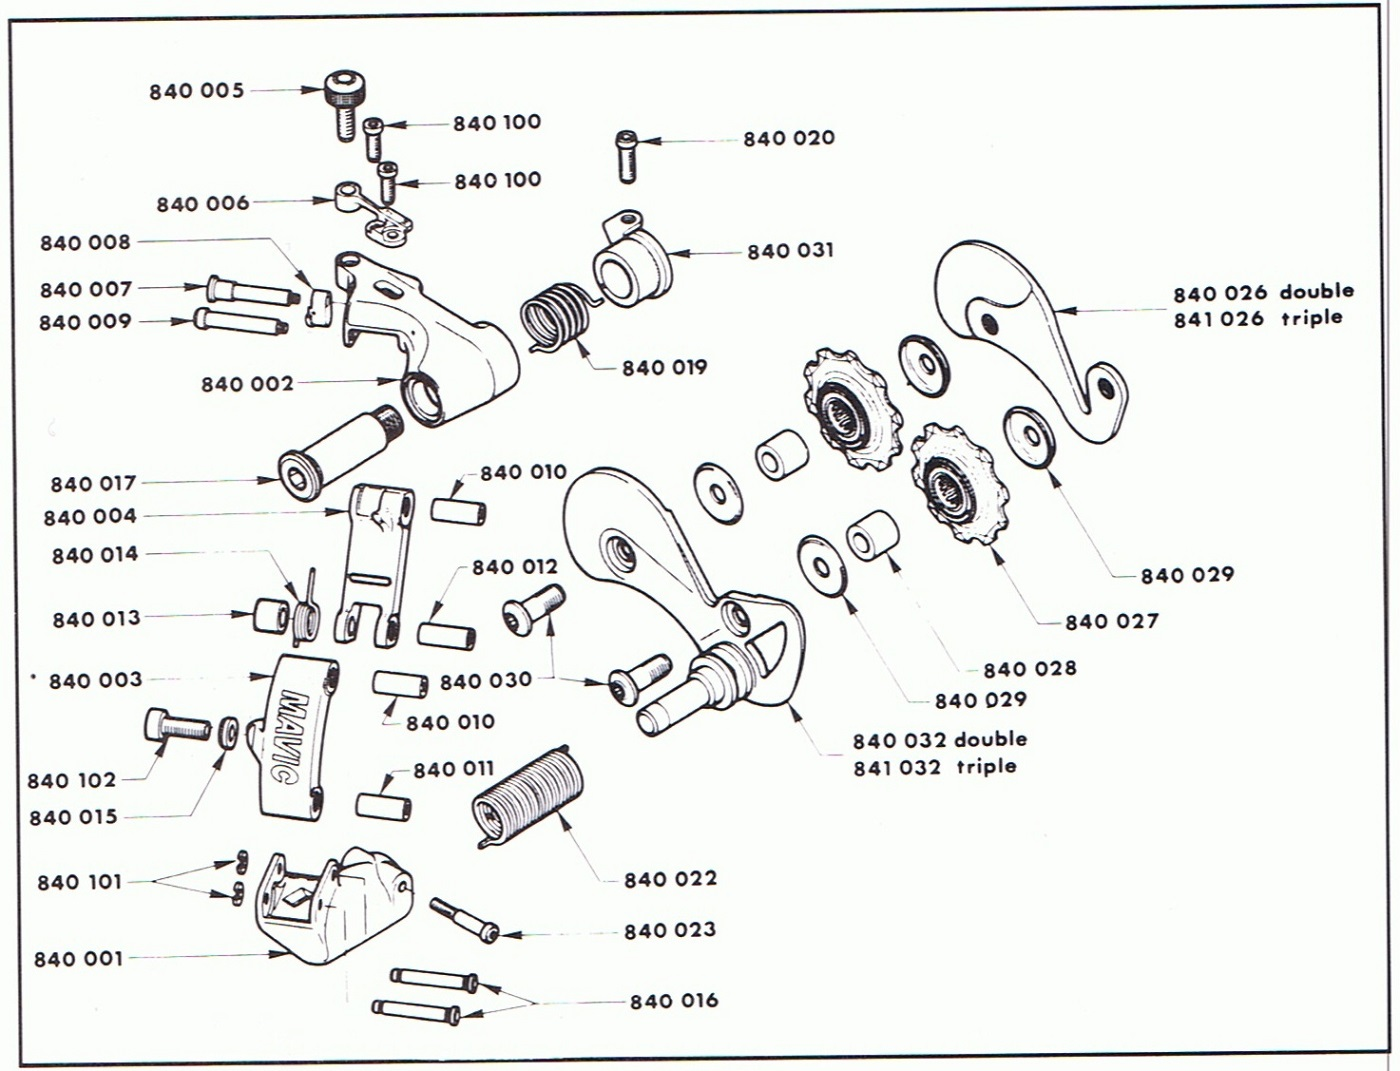 Bicycle Diagram Crankset